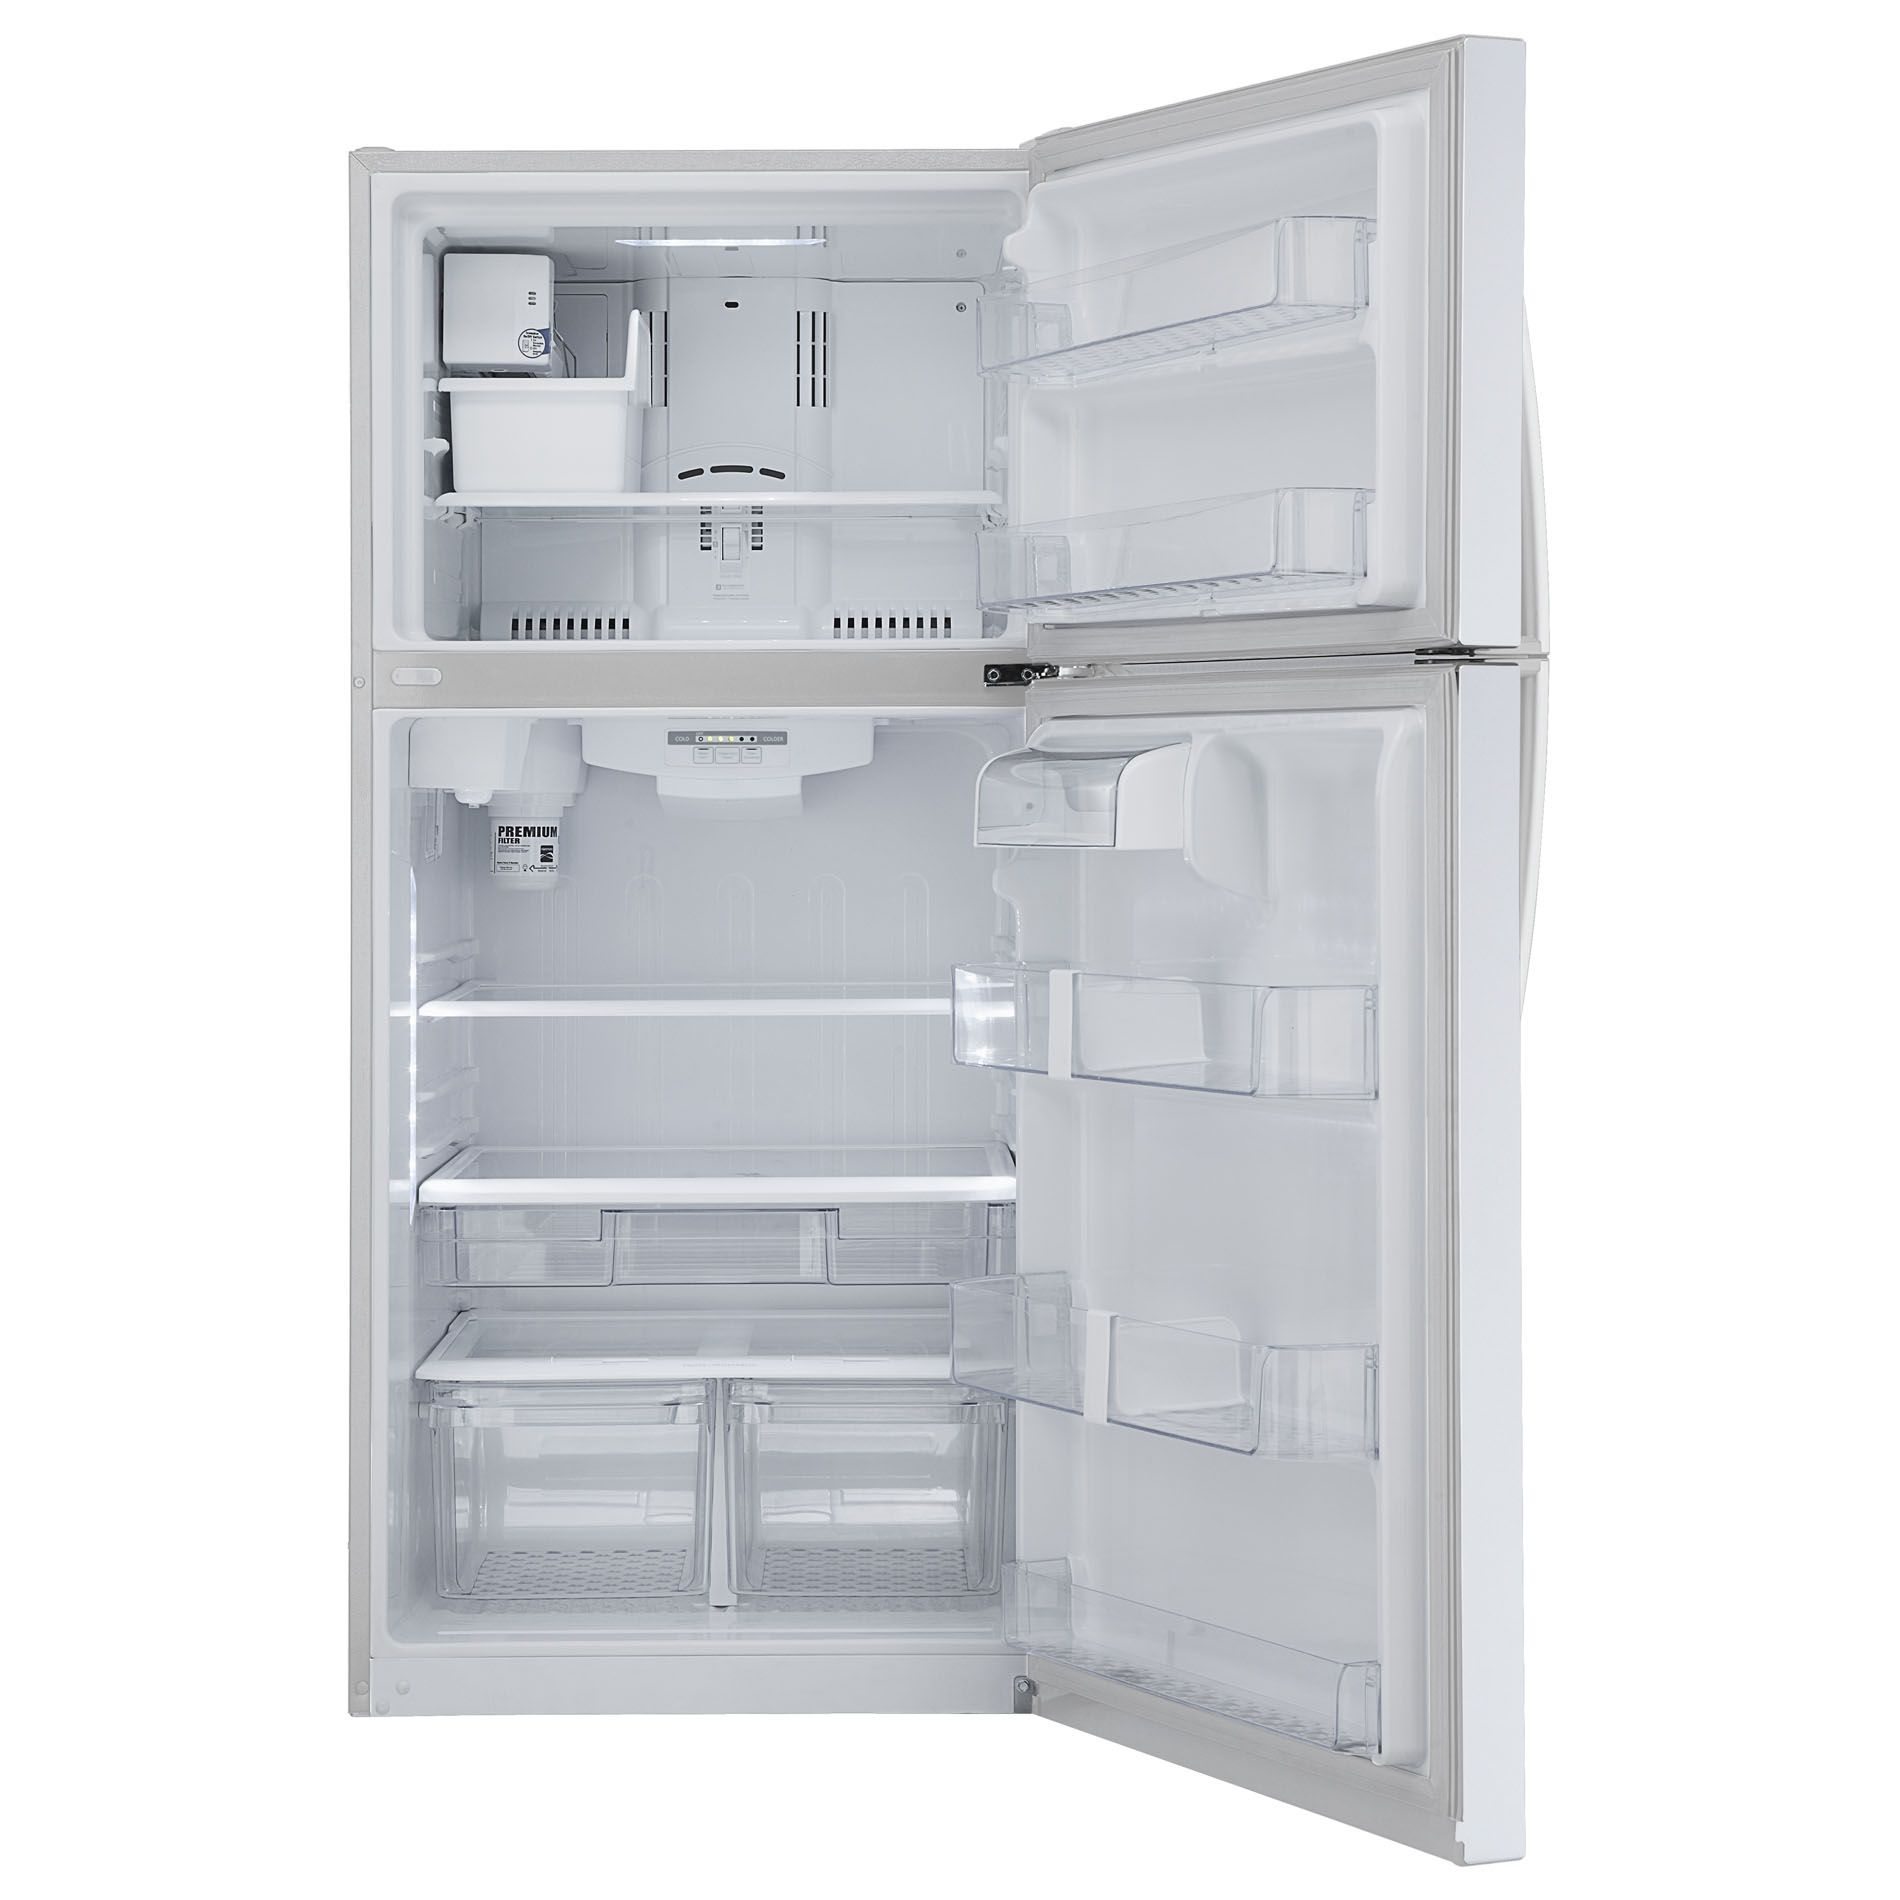 Kenmore 20 cu. ft. White Top-Freezer Refrigerator with Internal Water Dispenser